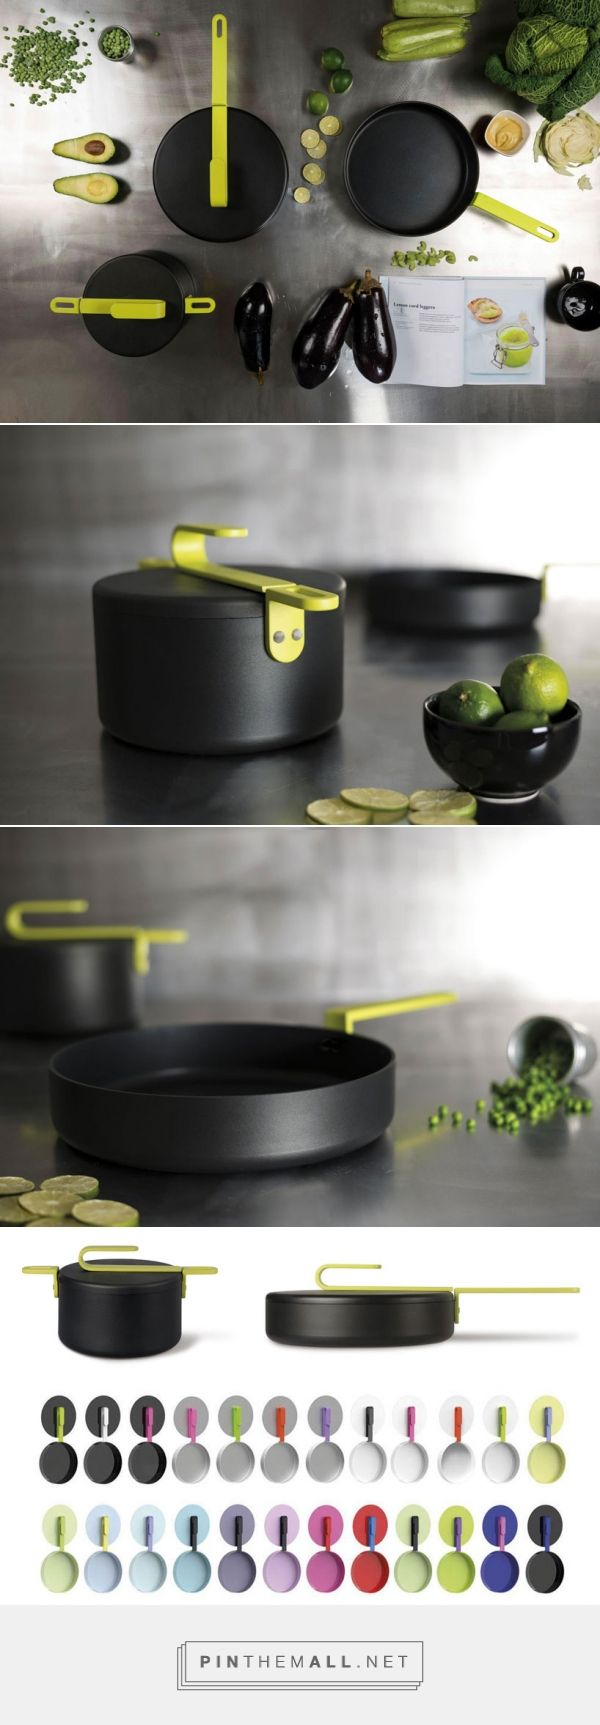 HOOK cookware collection | designed by Karim Rashid for TVS #cookware #KarimRashid